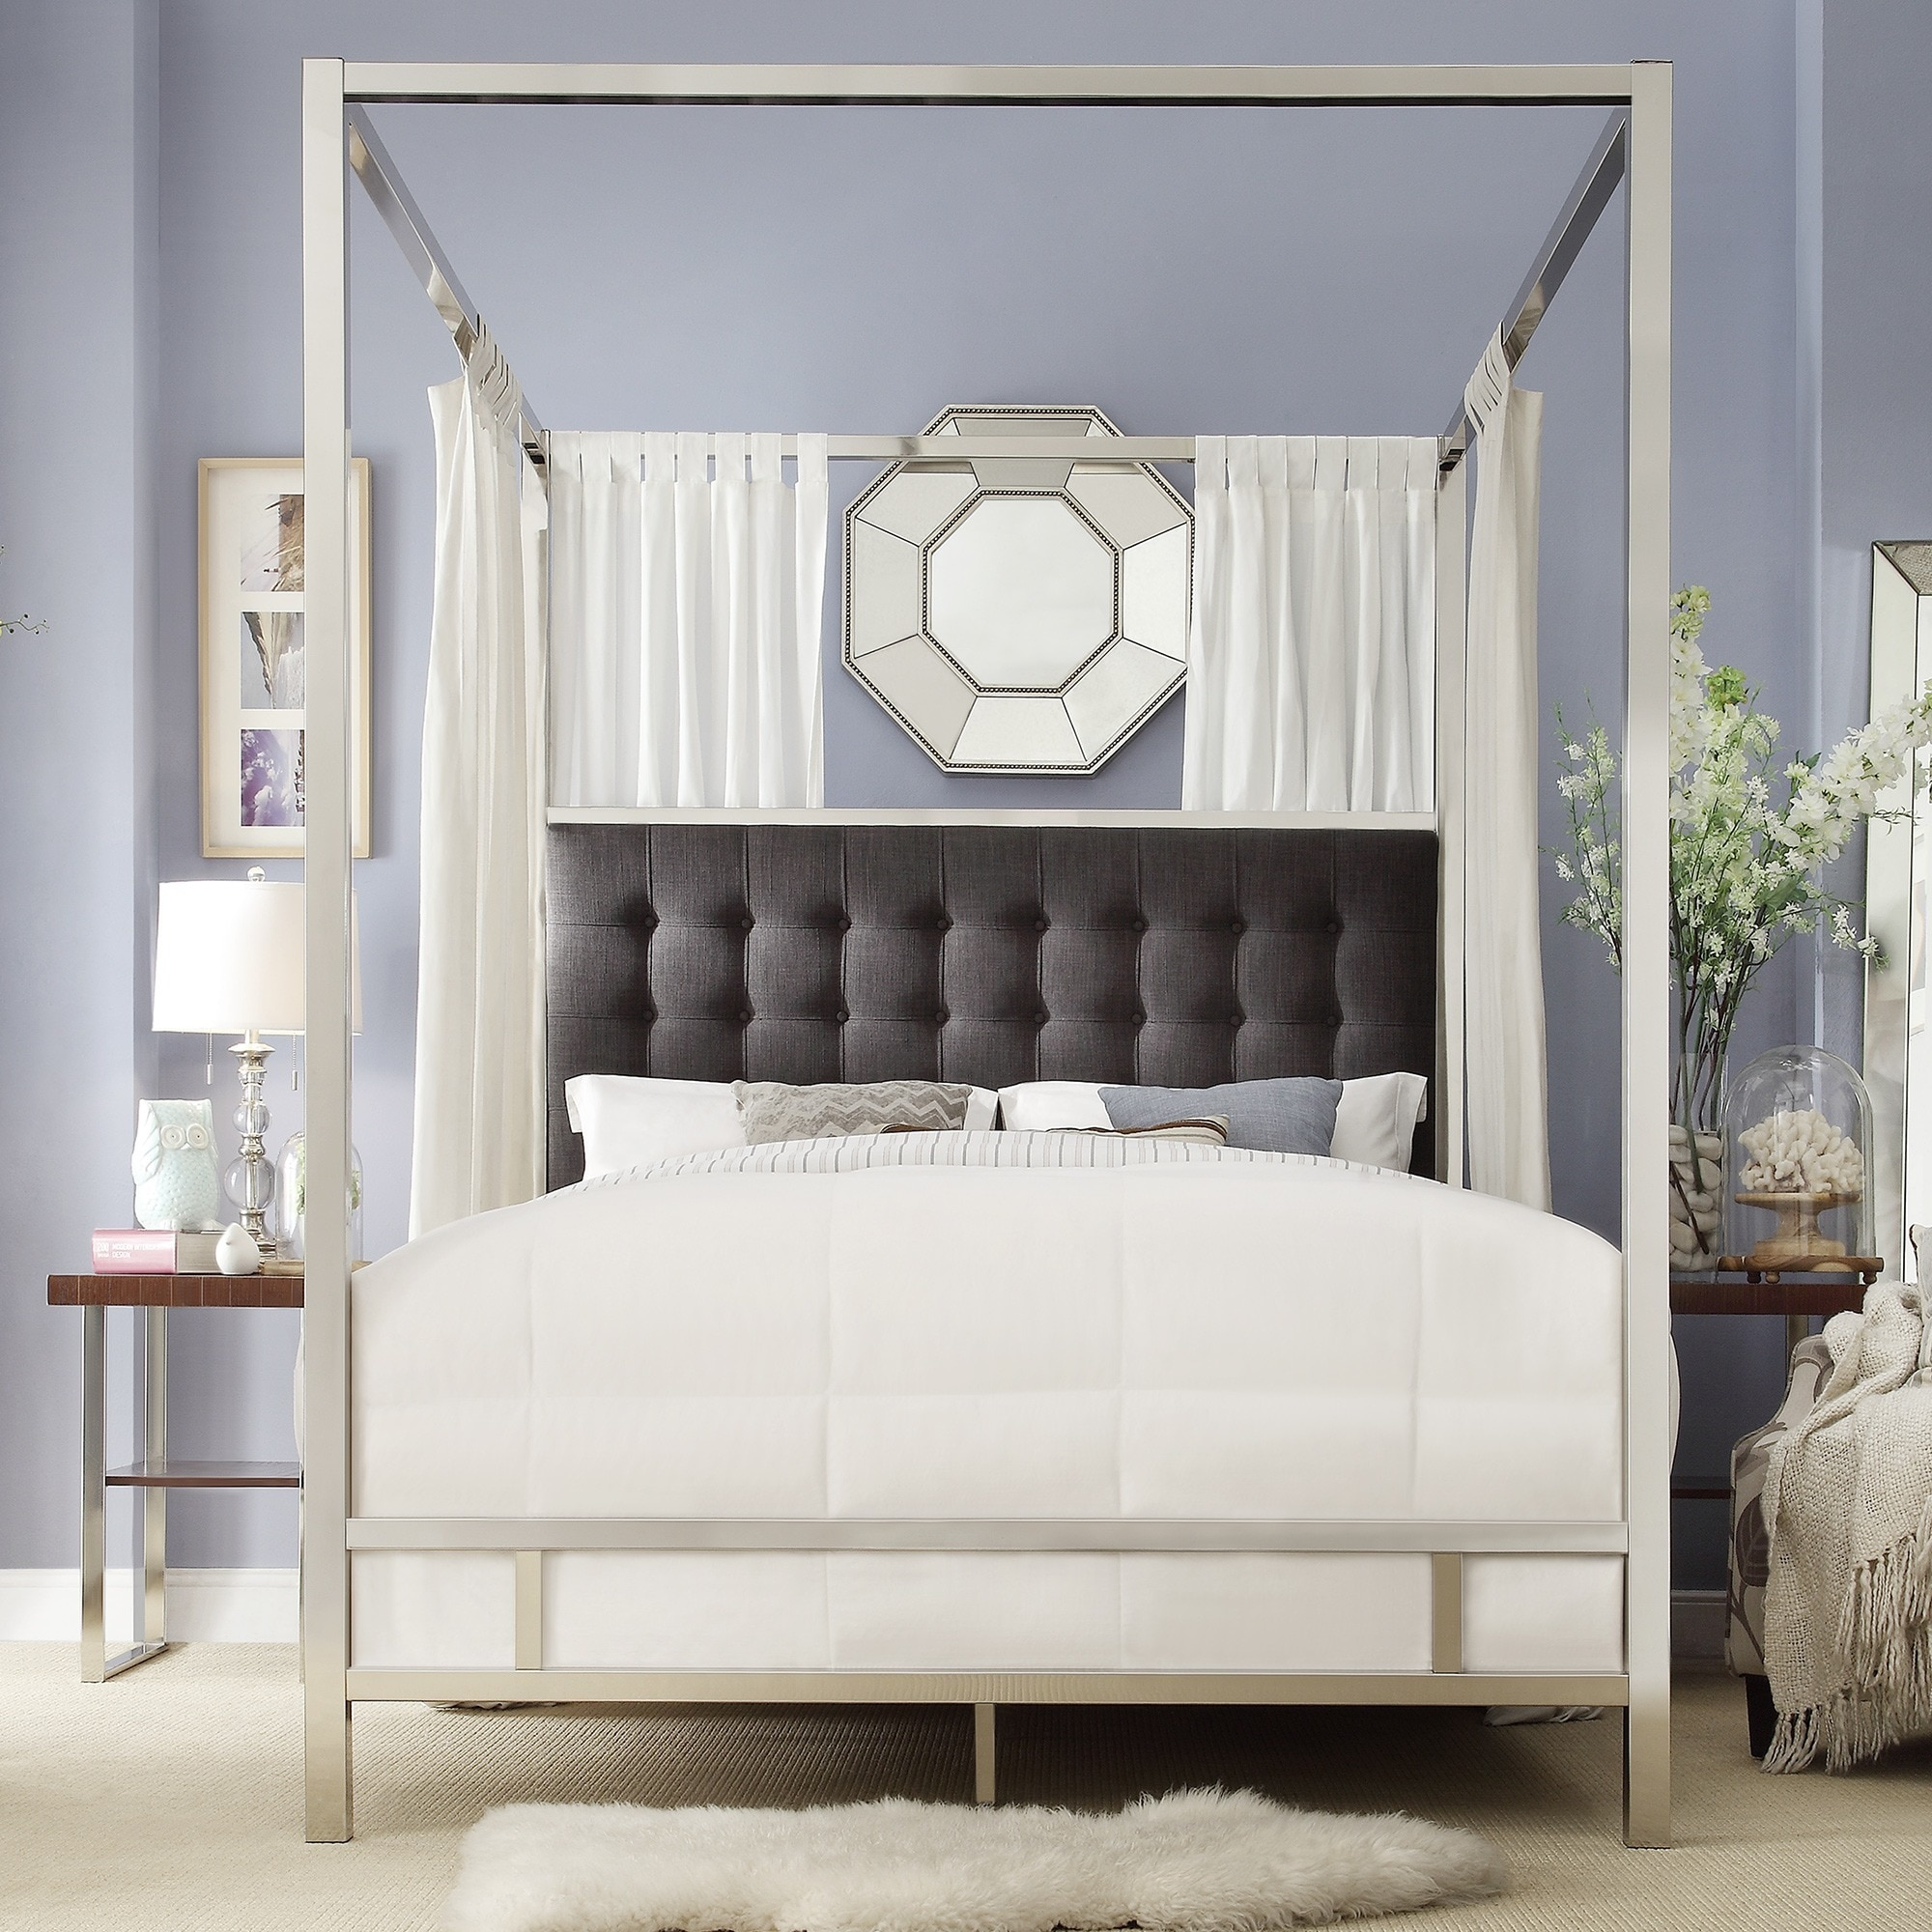 Solivita-Full-size-Canopy-Chrome-Metal-Poster-Bed-